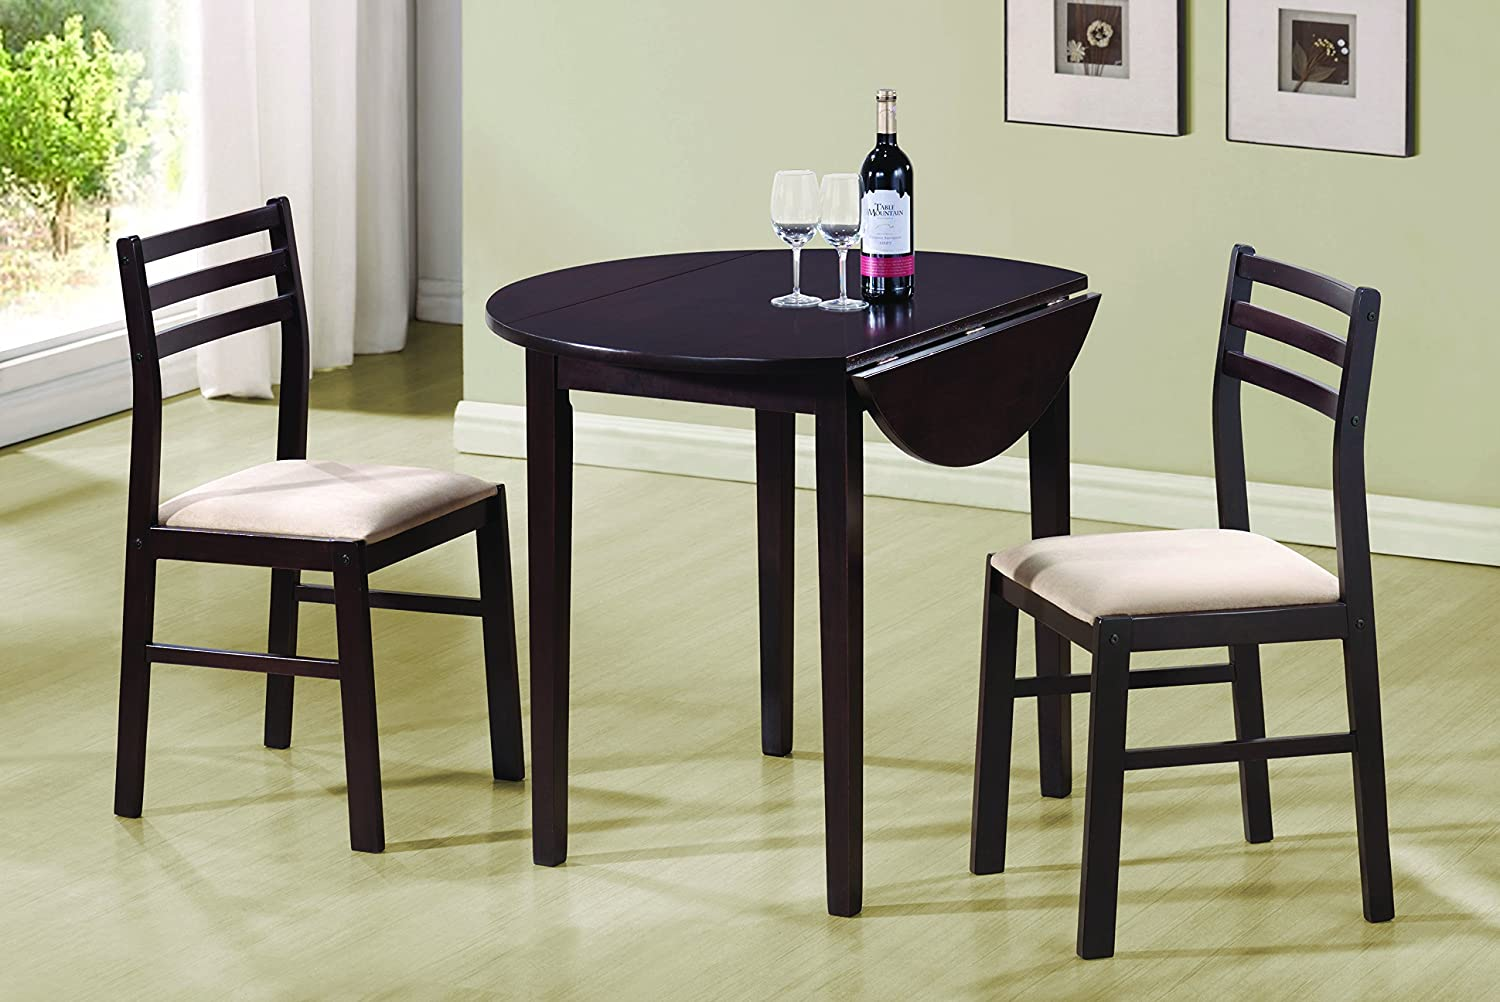 table  chair sets  amazoncom - product details